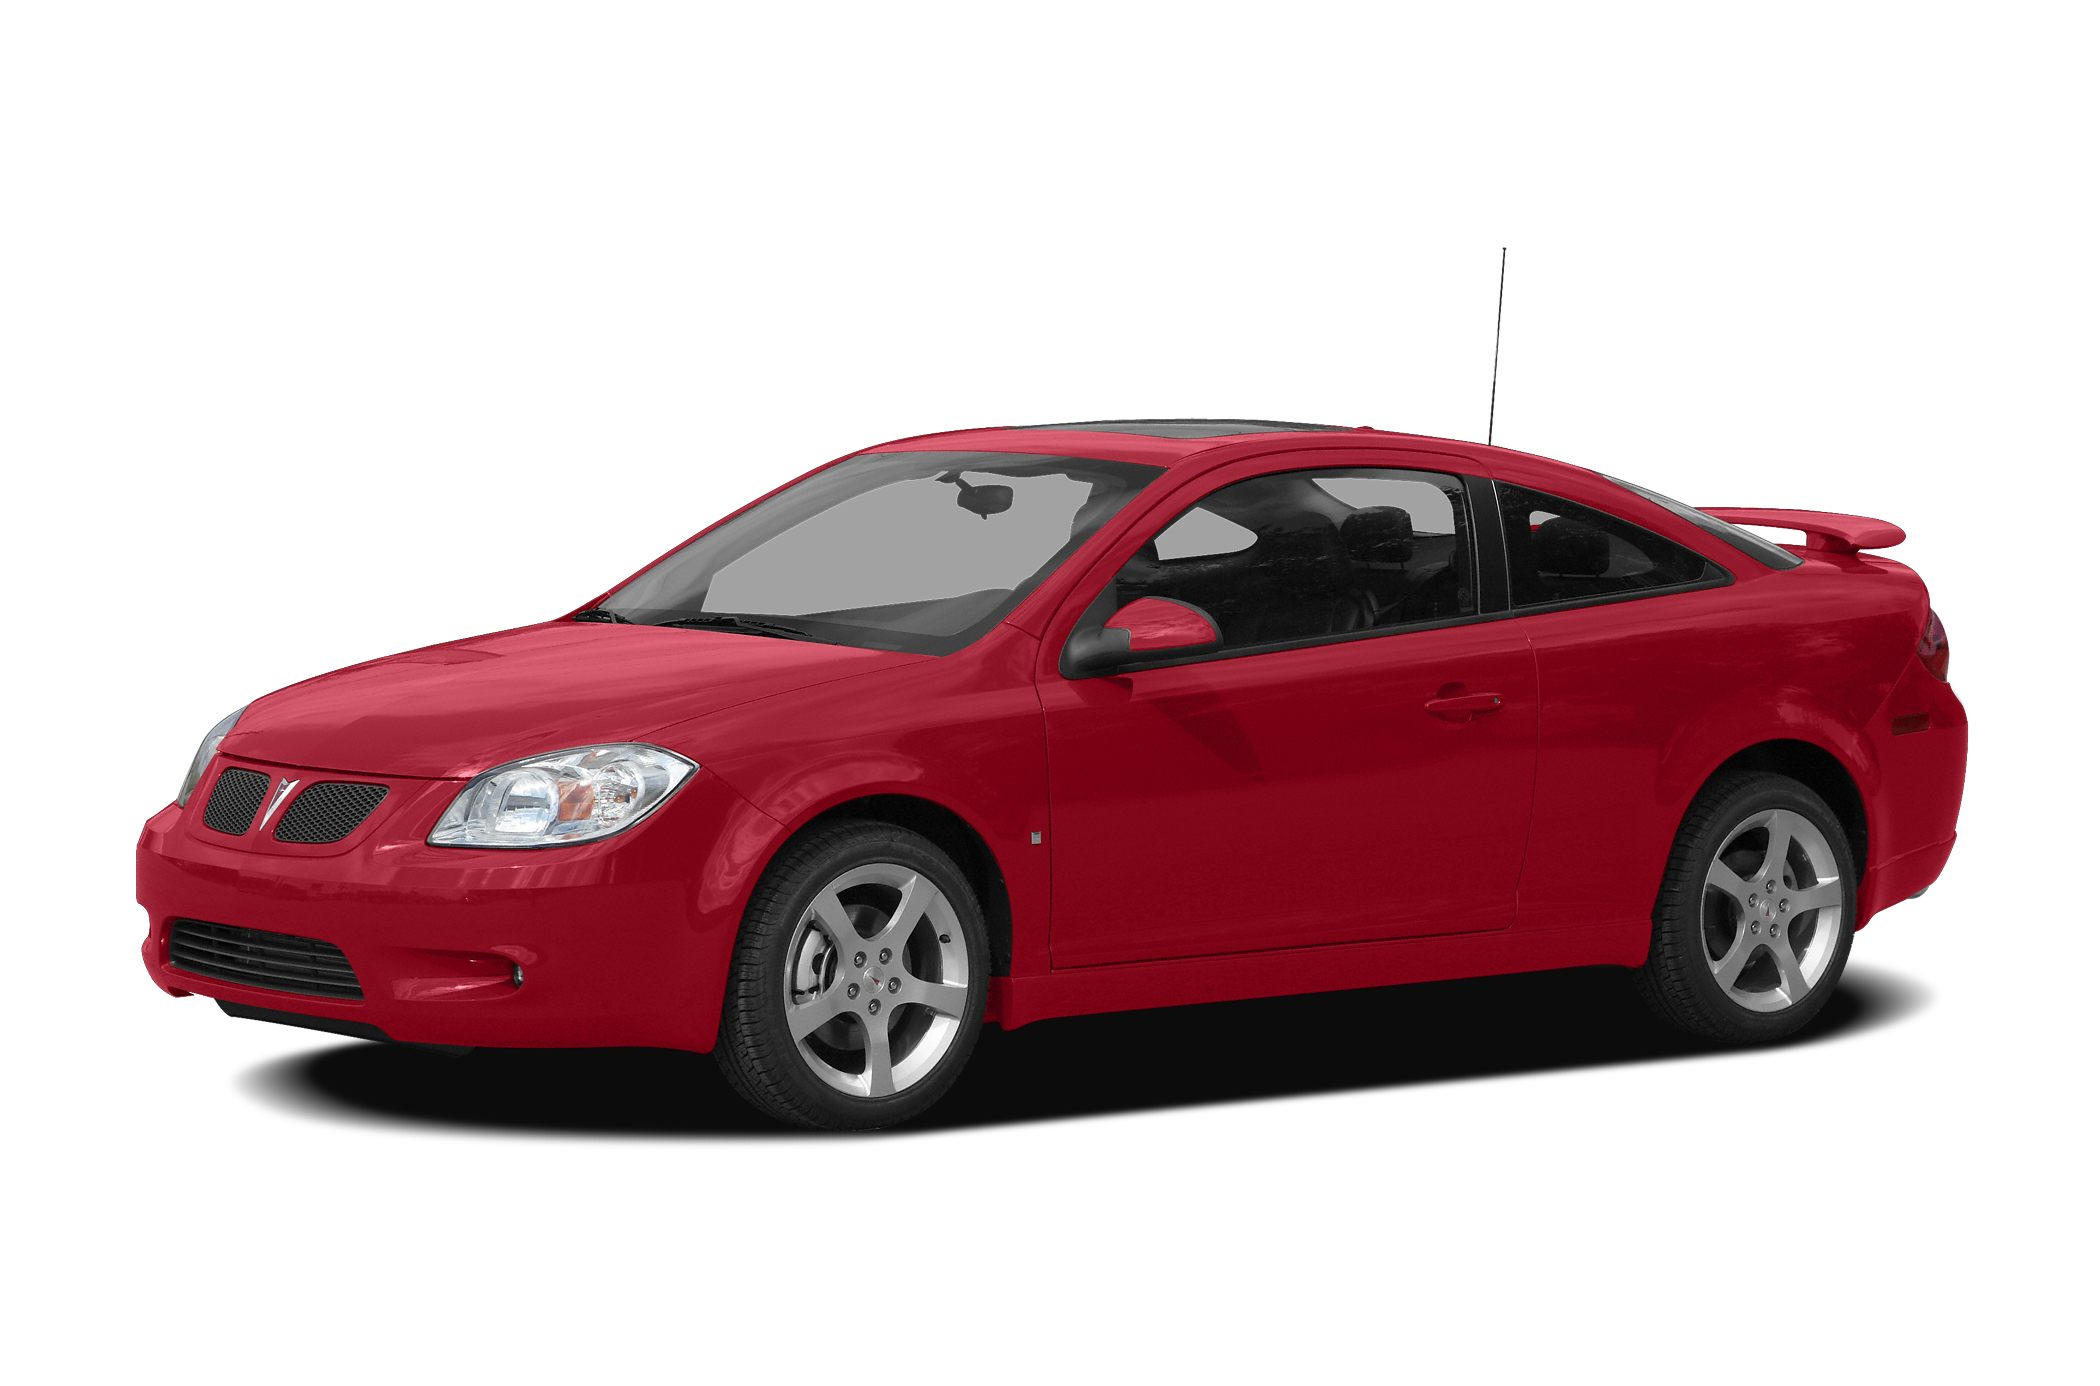 2009 Pontiac G5 GT Coupe for sale in Pasadena for $10,333 with 75,735 miles.